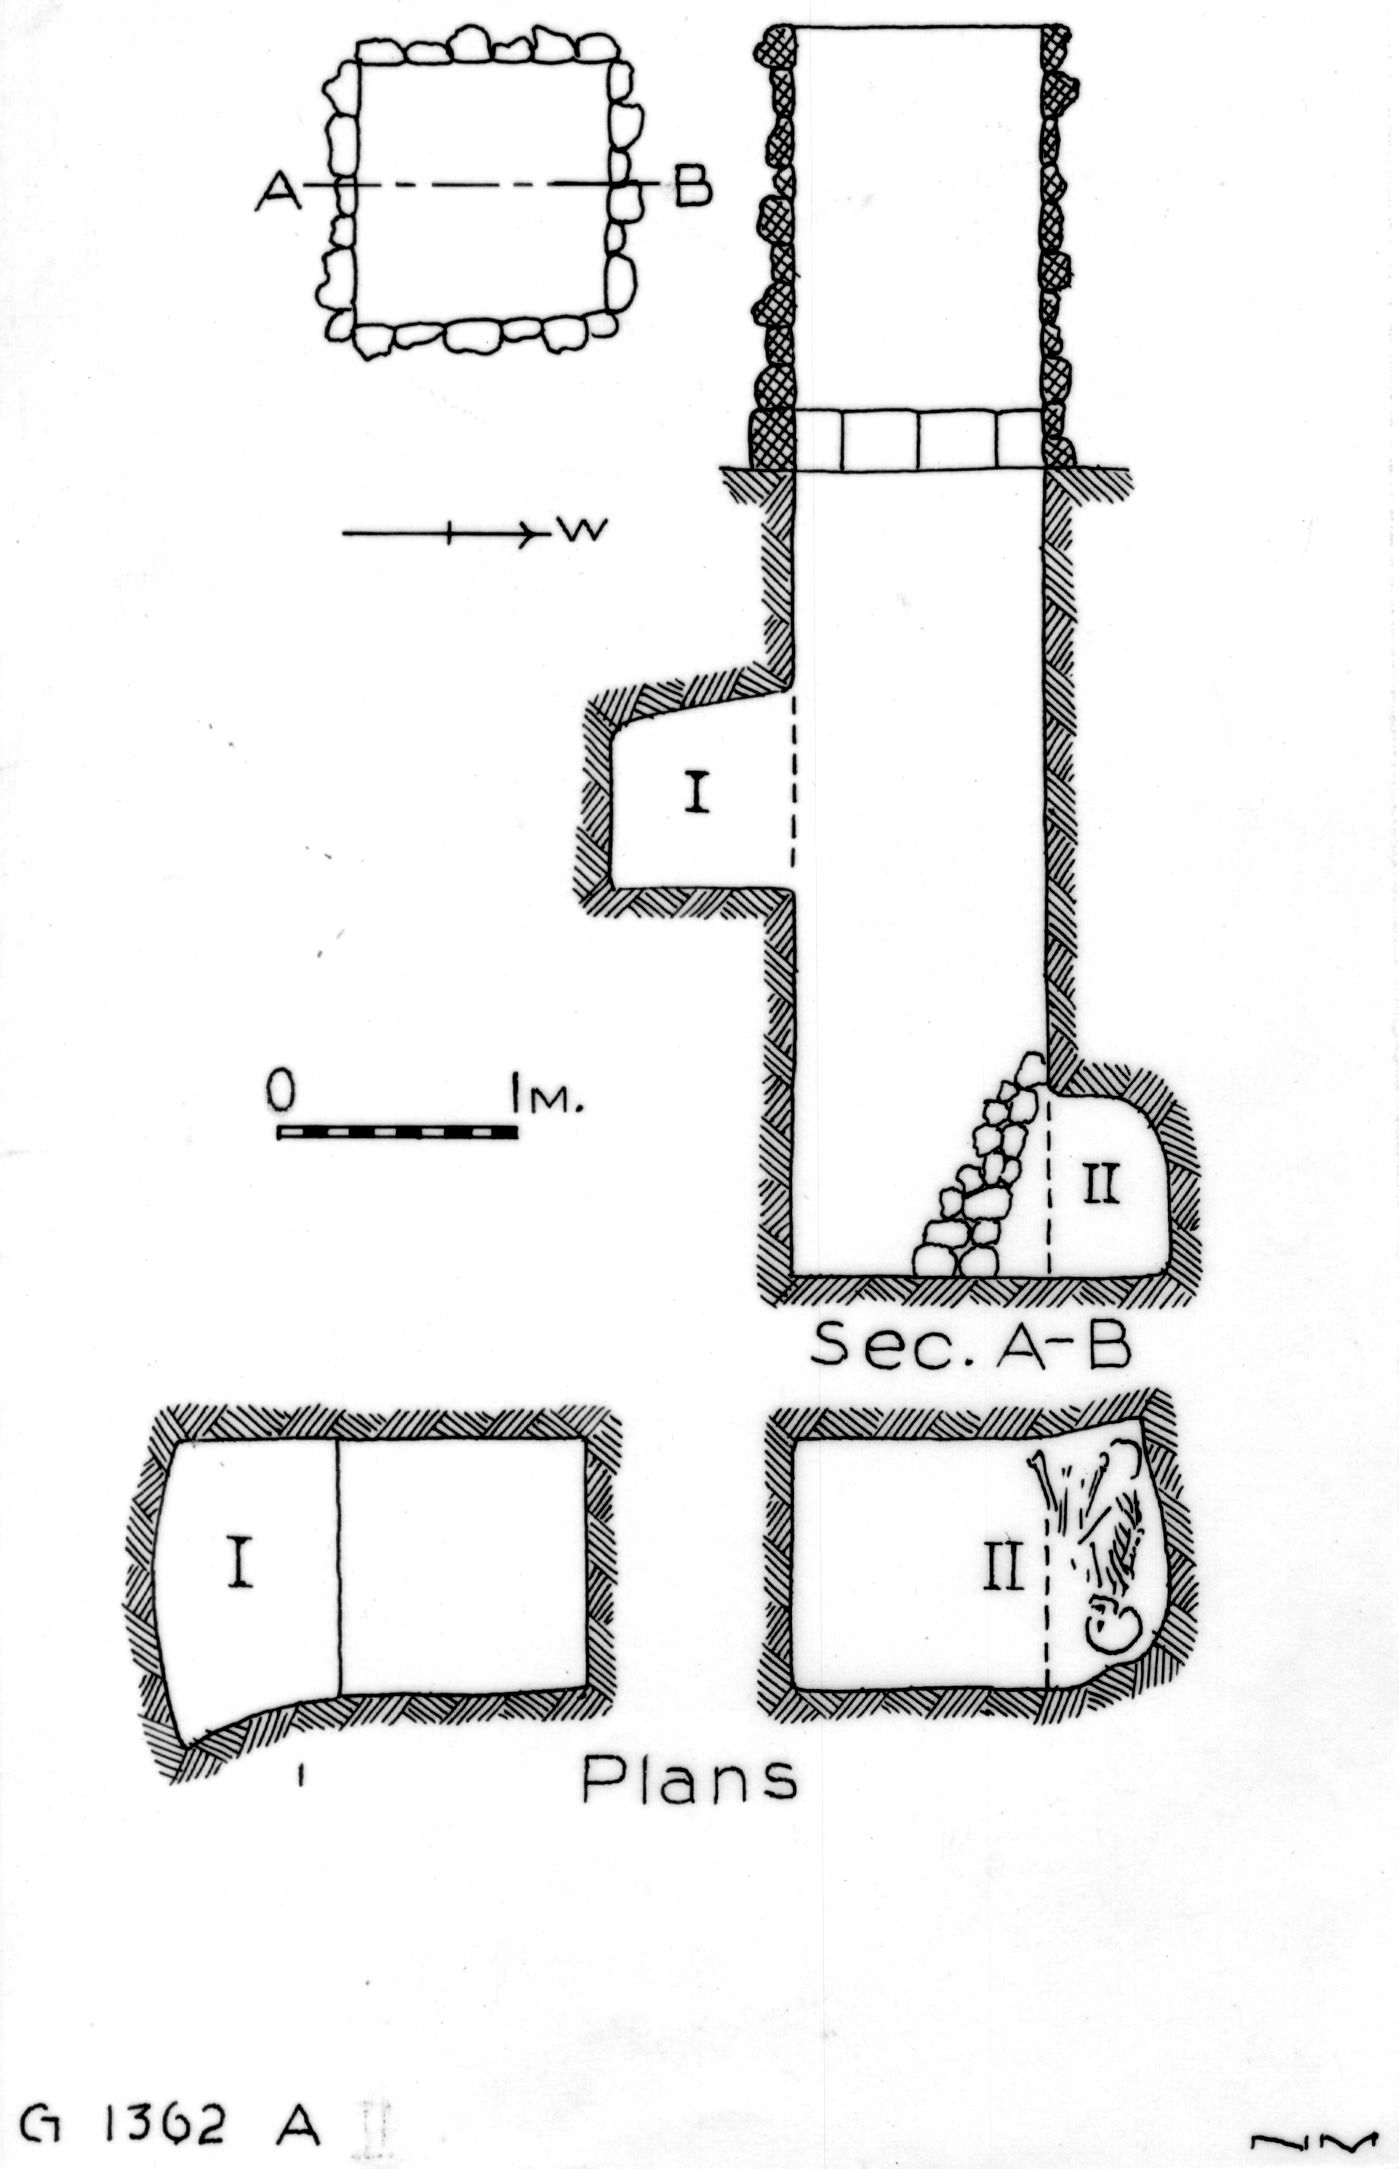 Maps and plans: G 1362, Shaft A